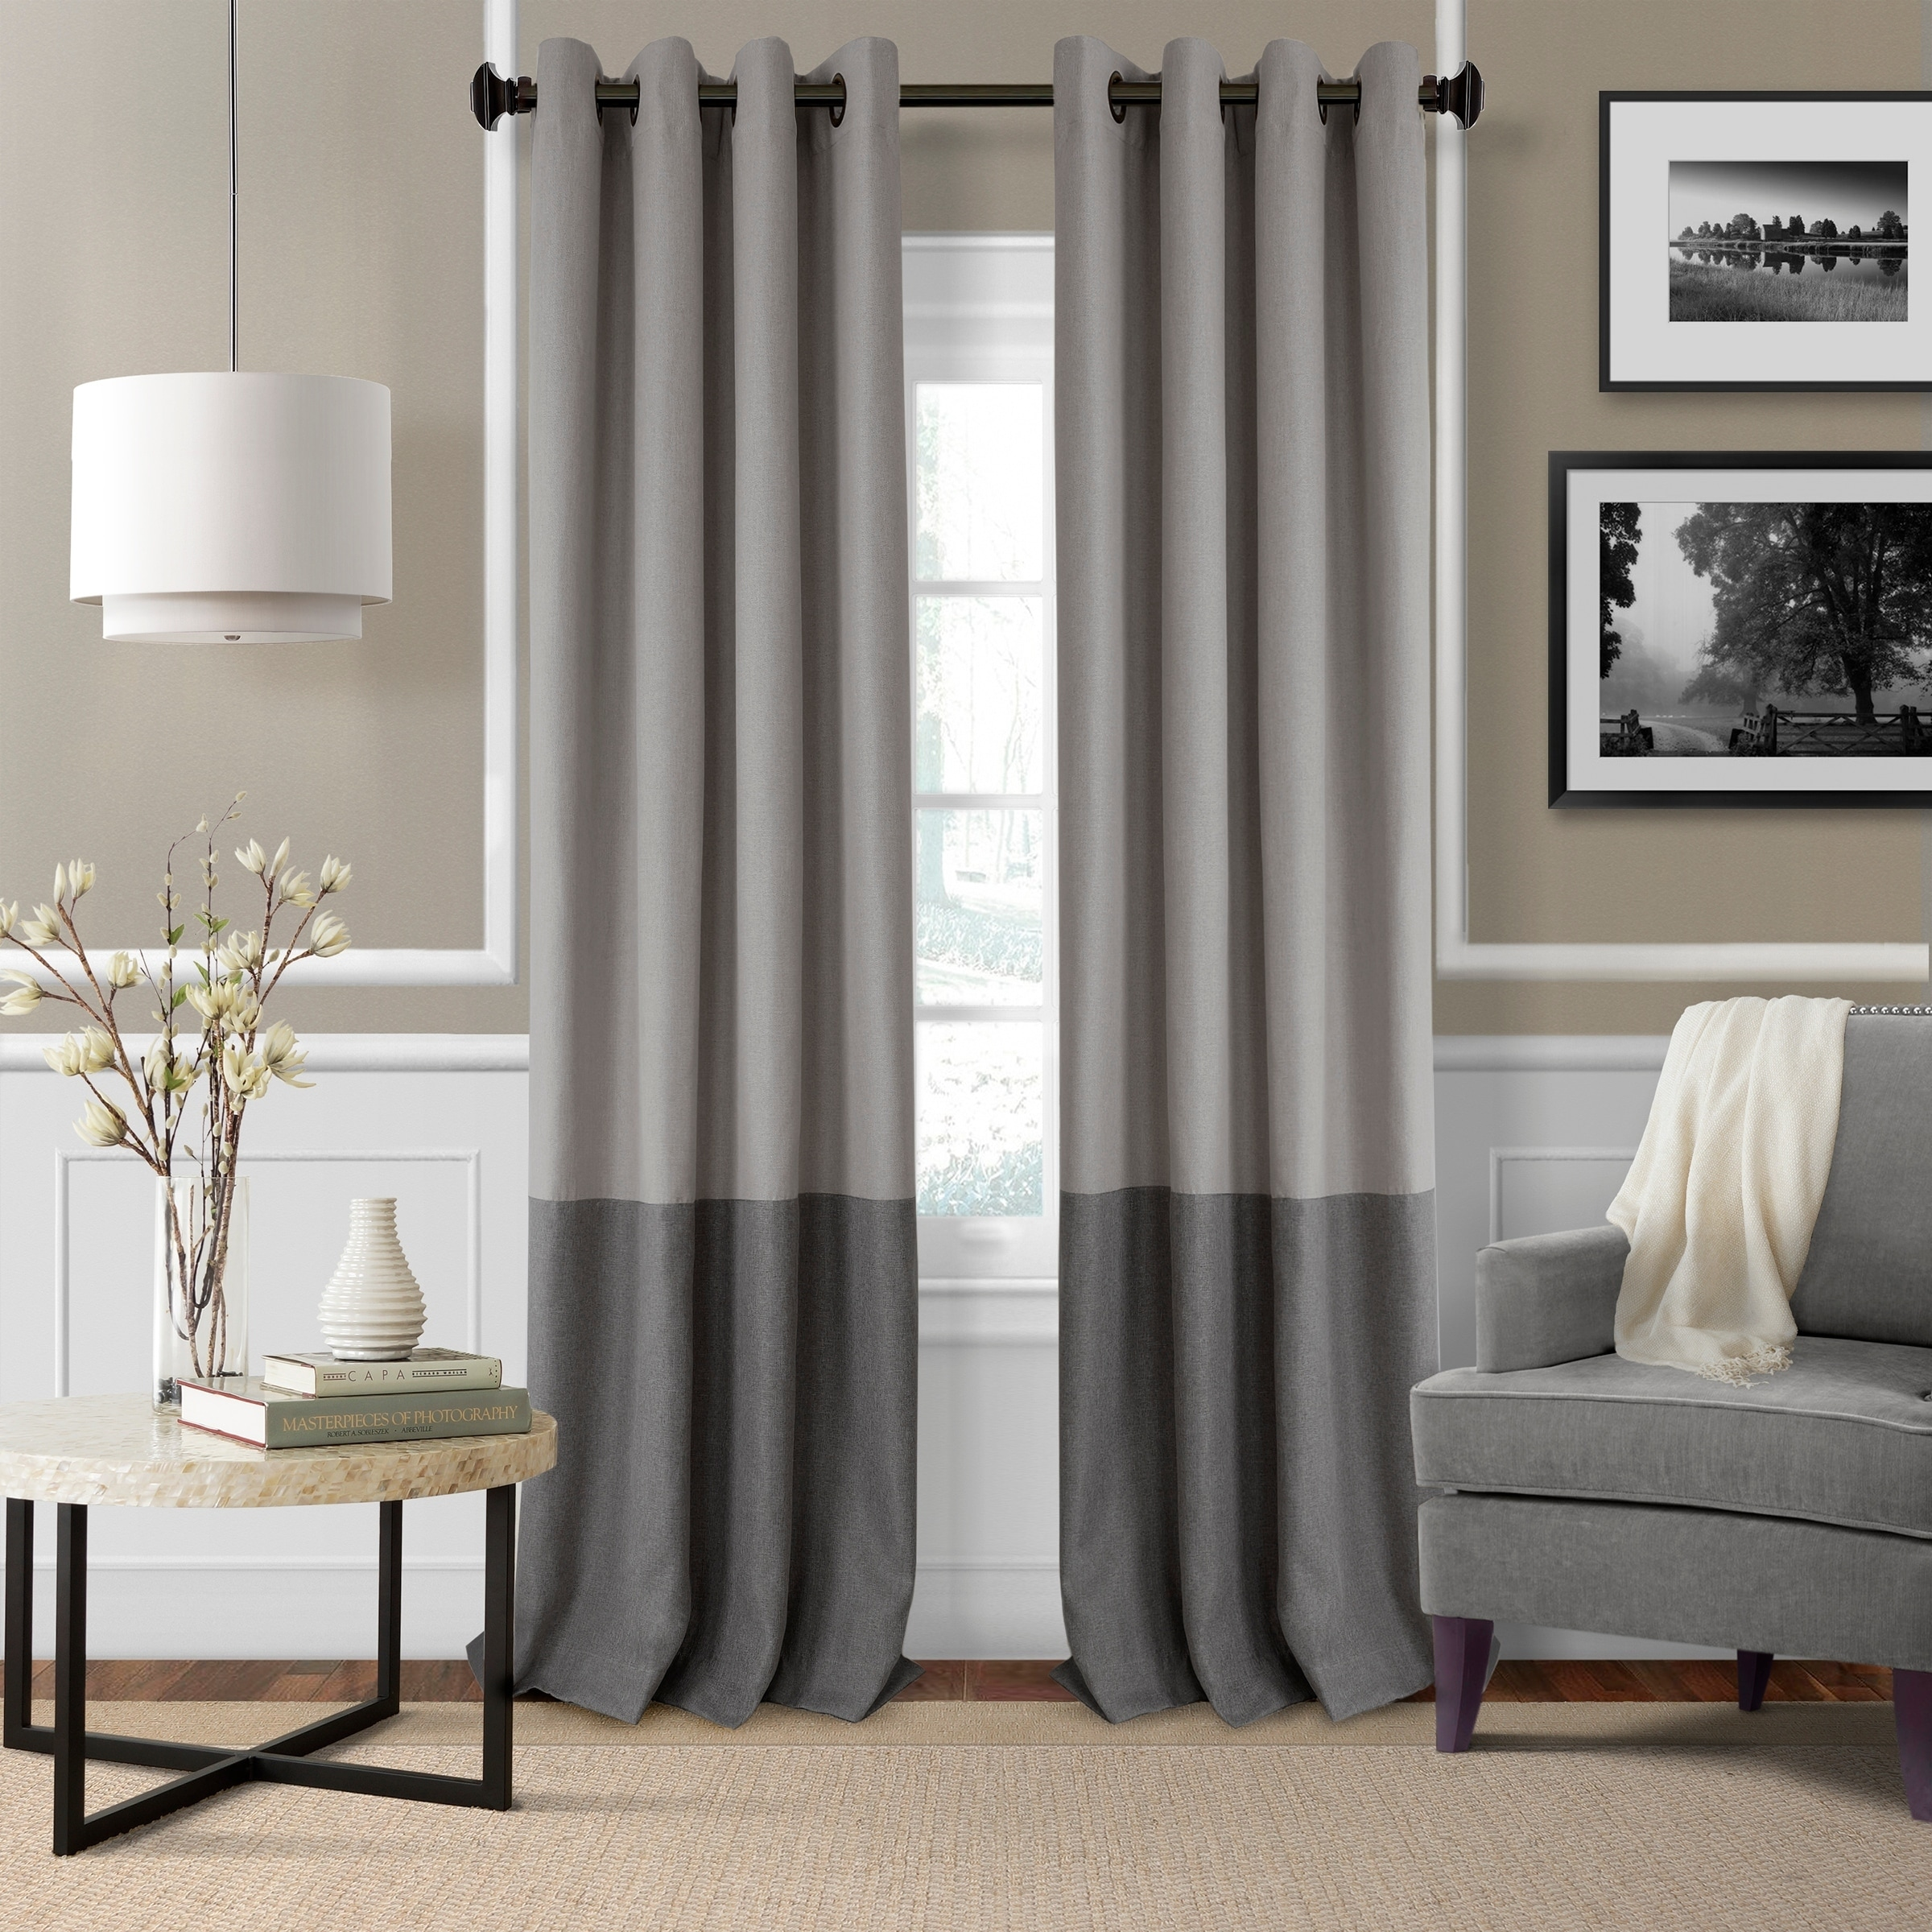 gray pin curtain braswell reviews blackout curtains wayfair linen grove august thermal panels